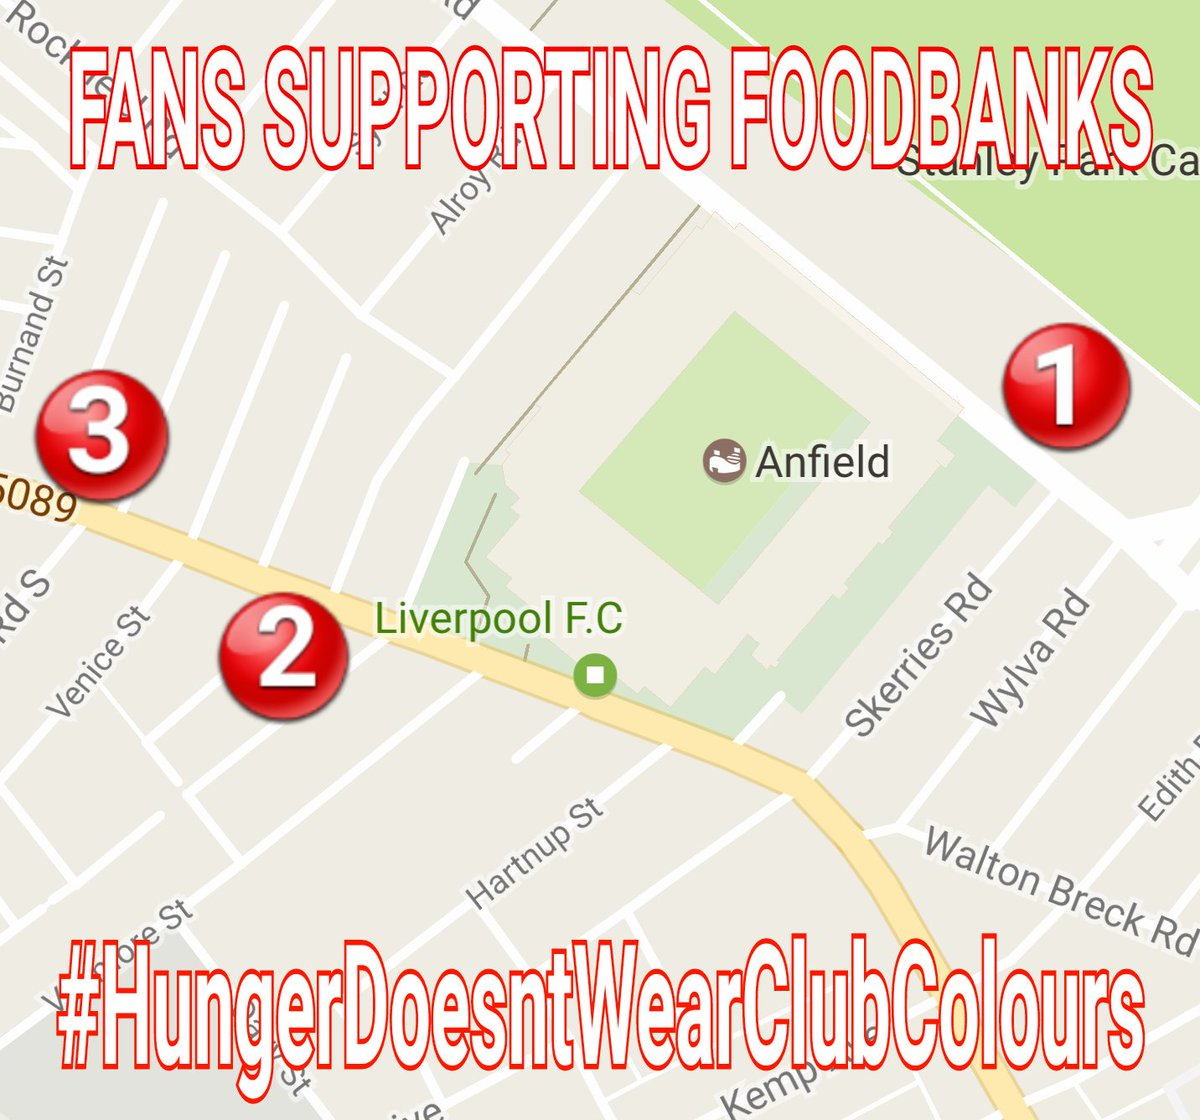 Fans Supporting Foodbanks On Twitter At Theanfieldwrap Here